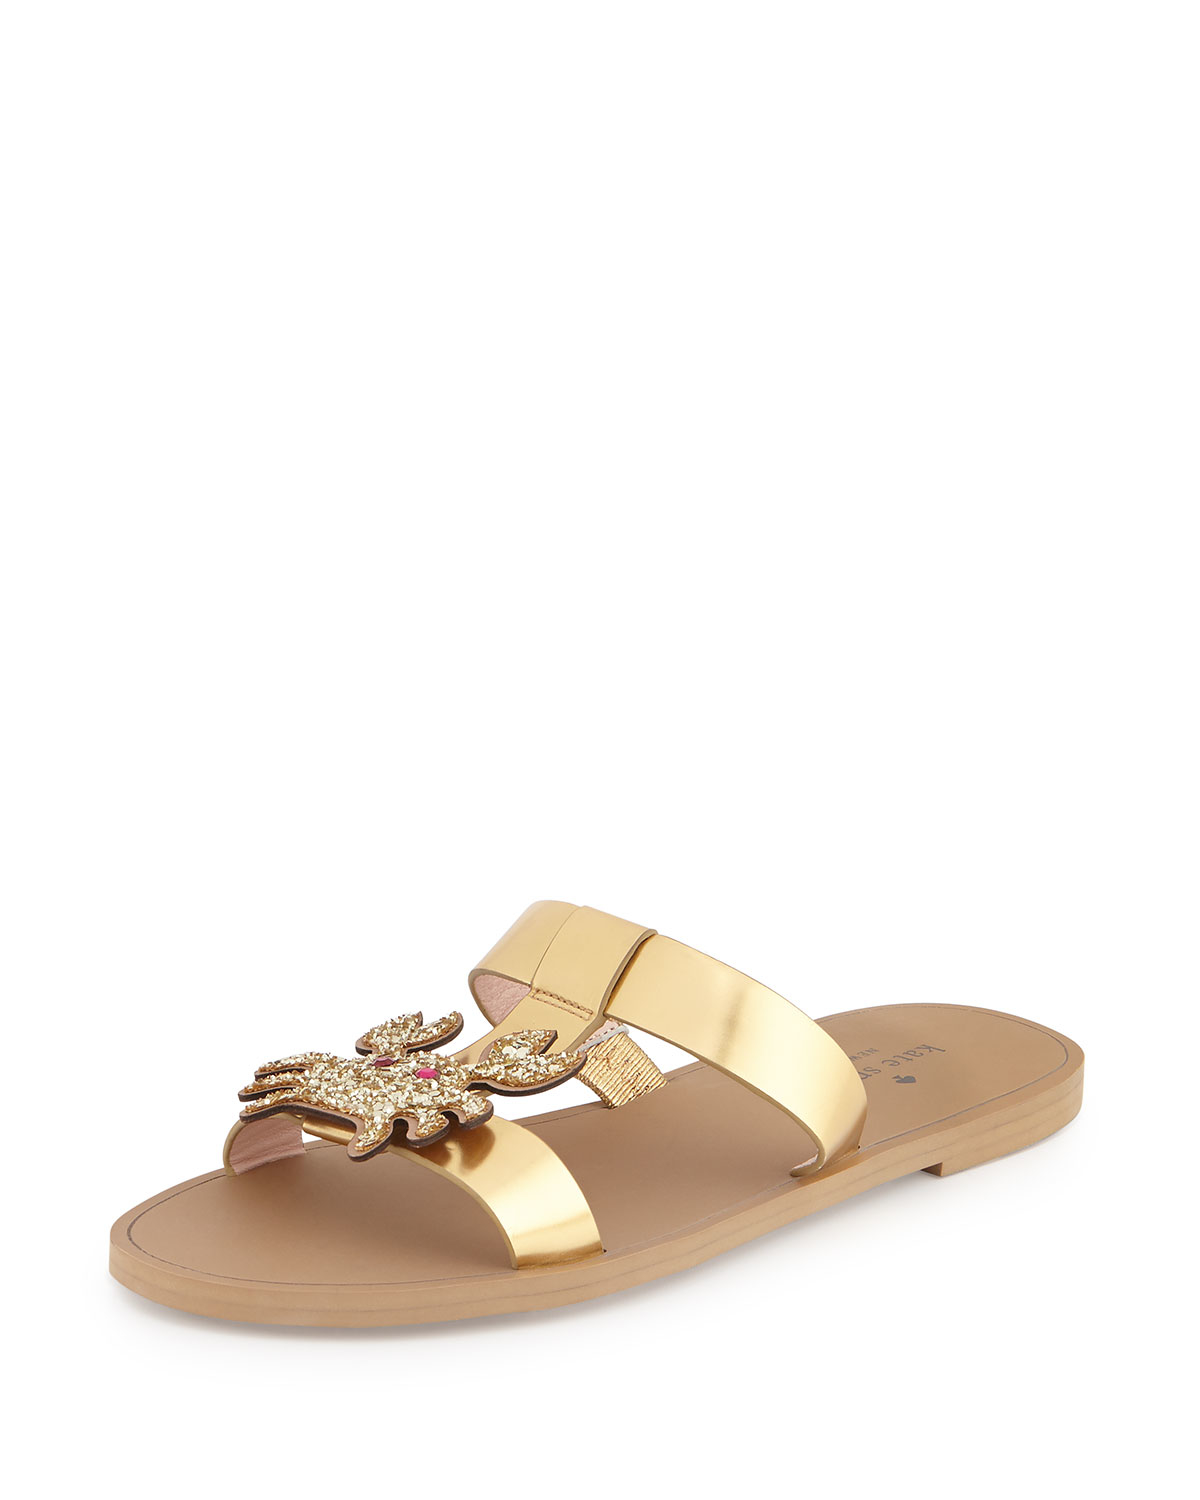 sale footlocker finishline cheap in China Kate Spade New York Fringe Metallic Sandals clearance fast delivery outlet affordable FcmaD5